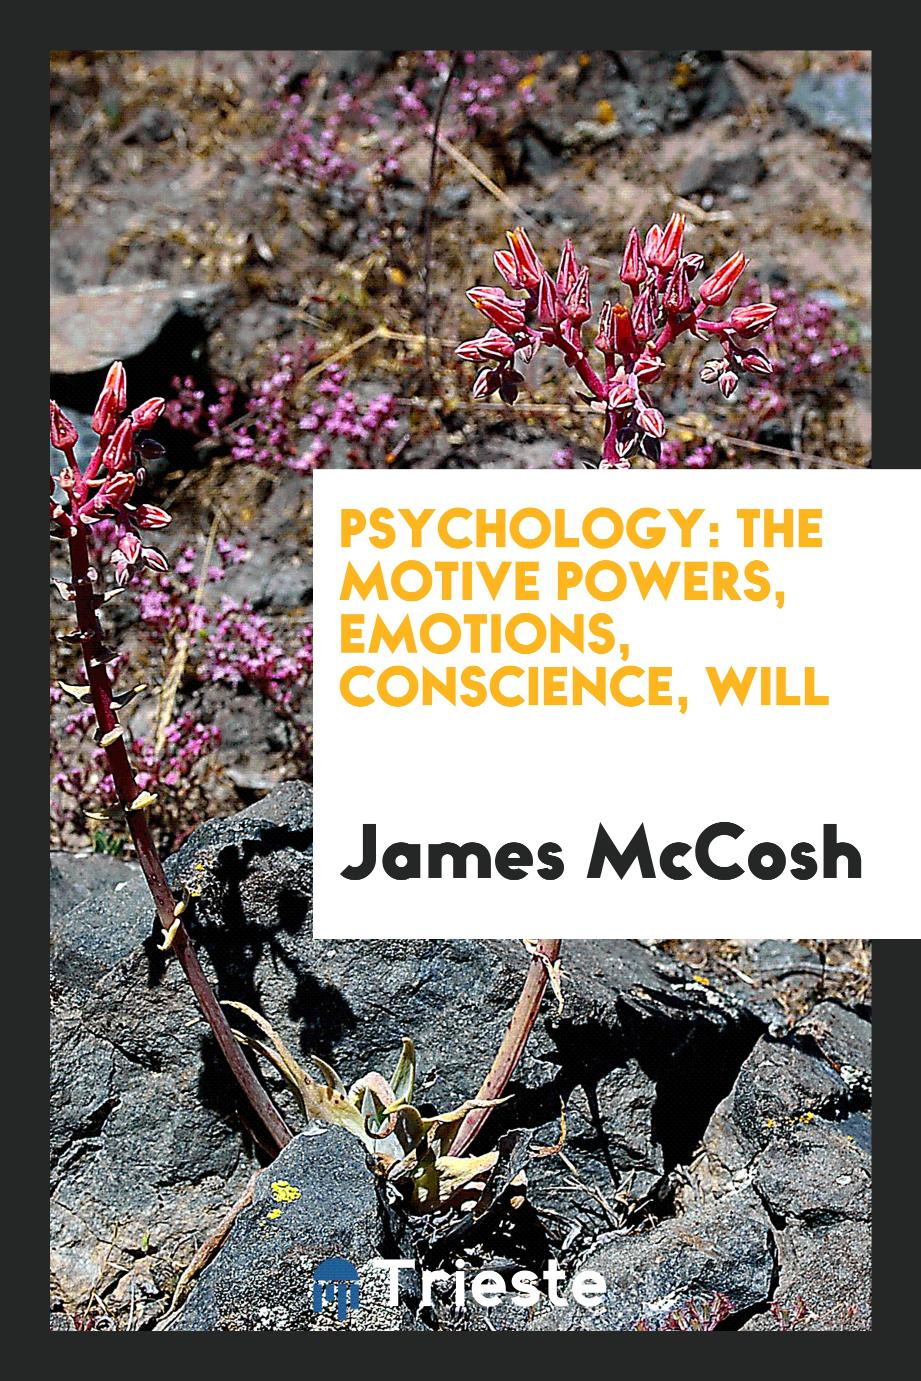 Psychology: the motive powers, emotions, conscience, will